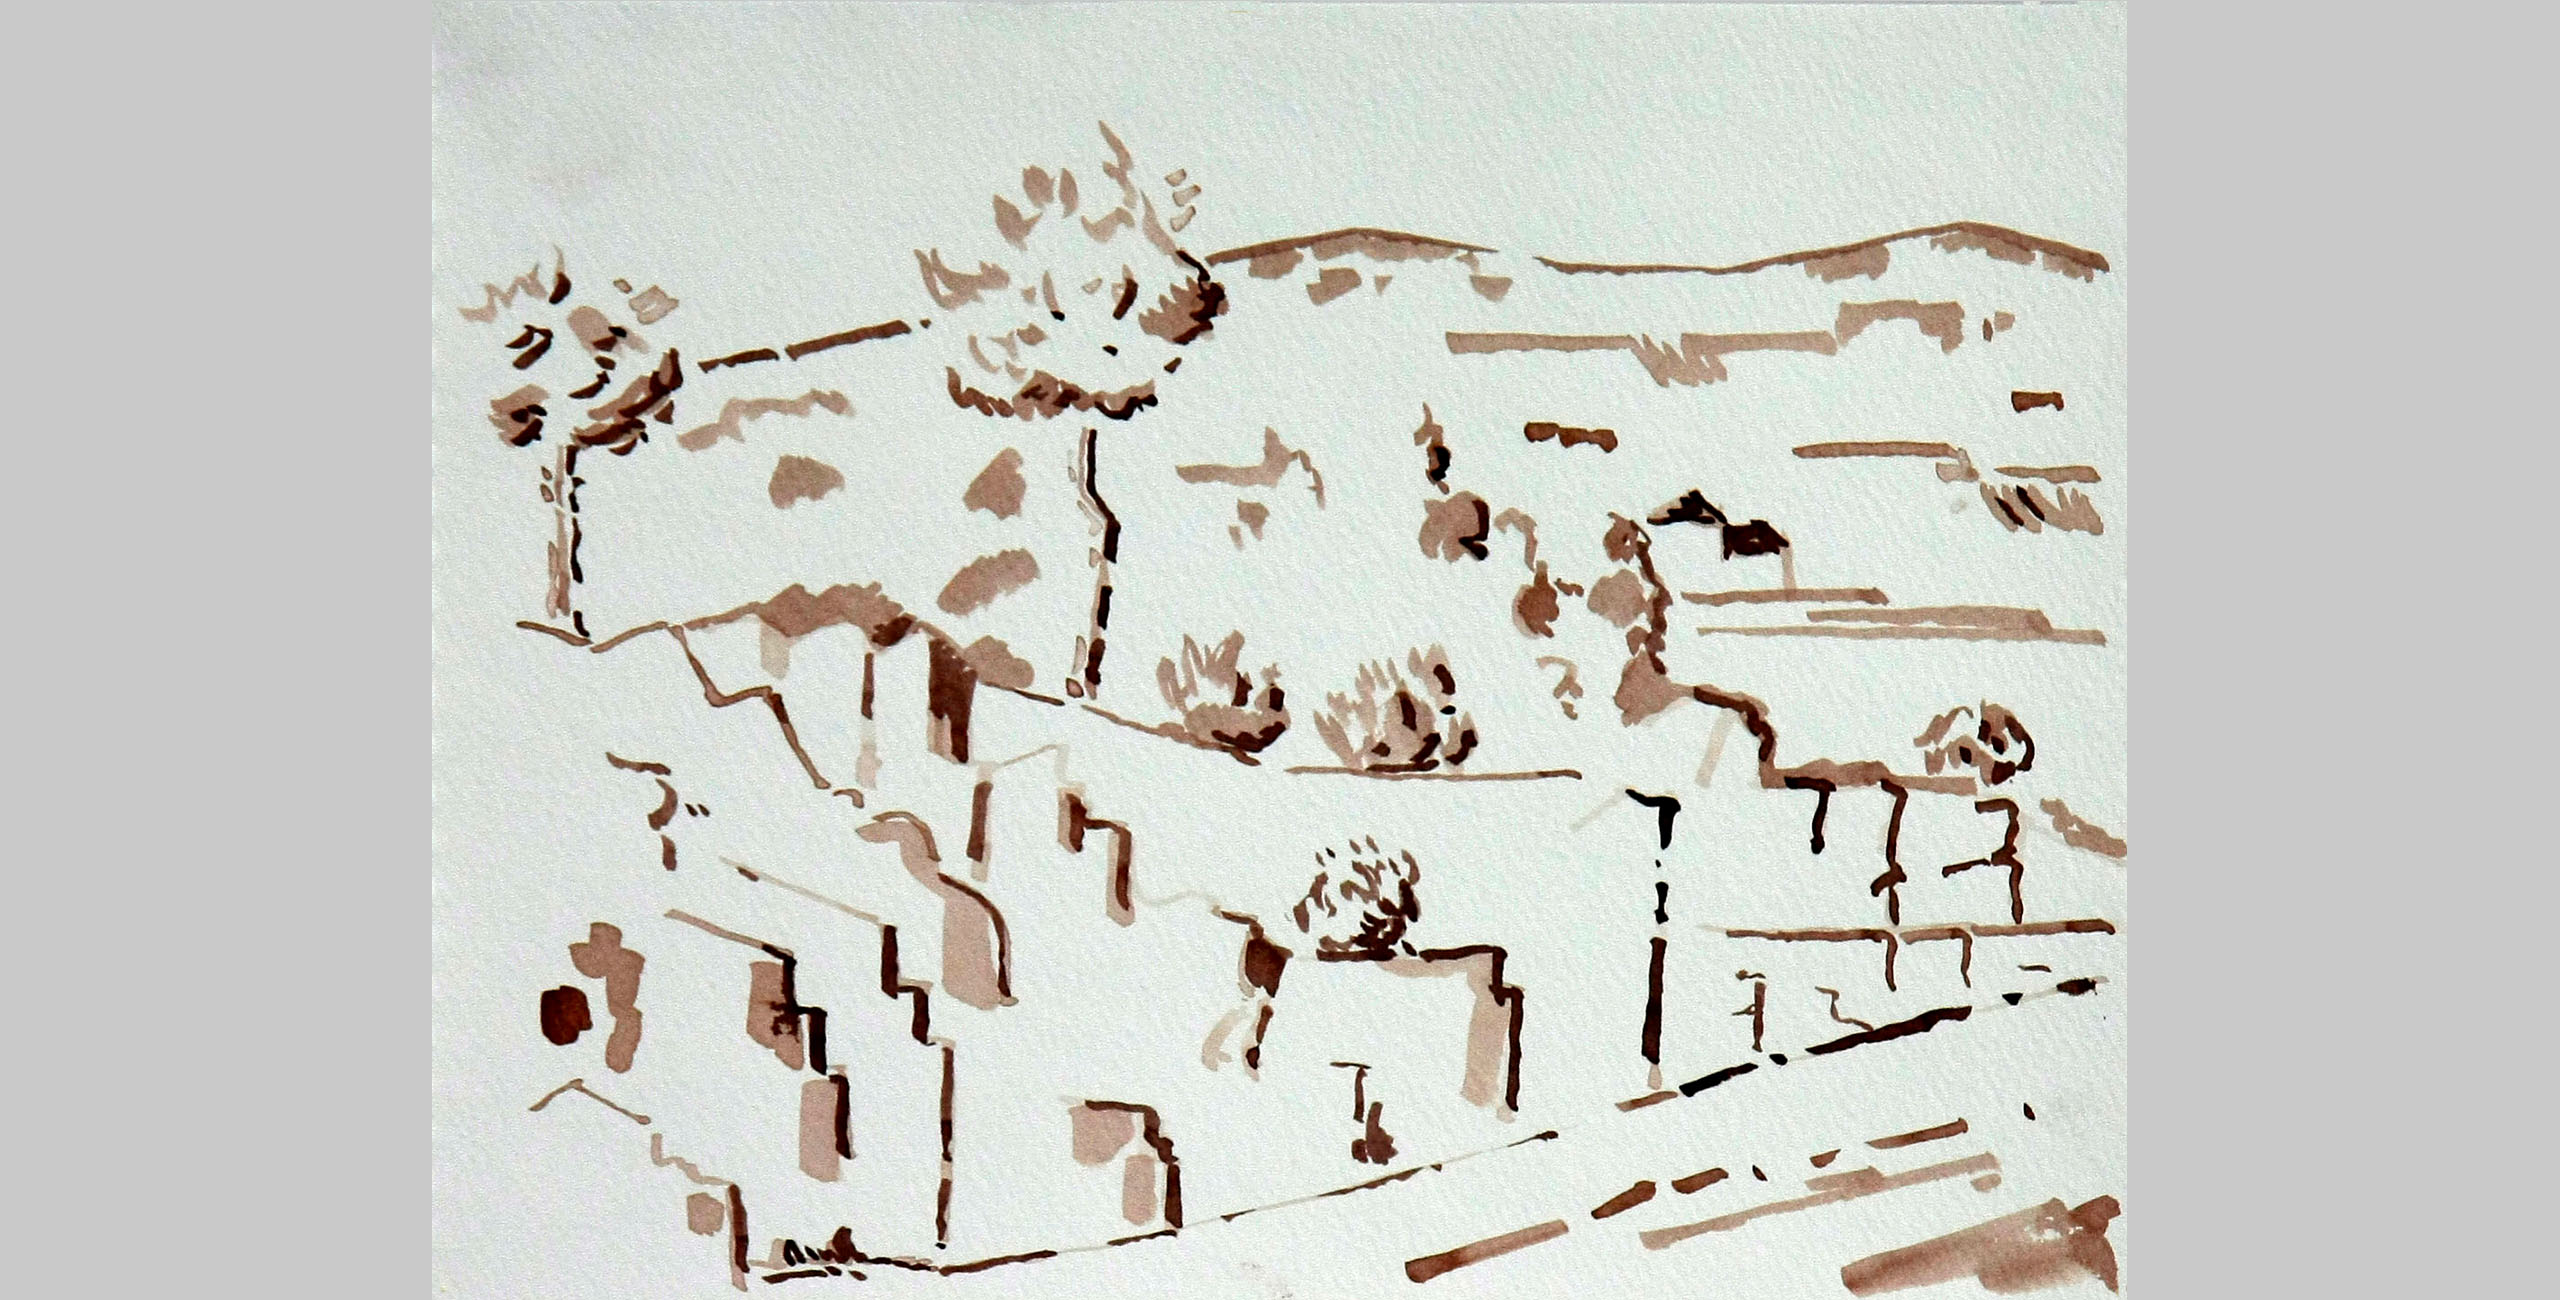 Landscape 20, 2011, ink on paper